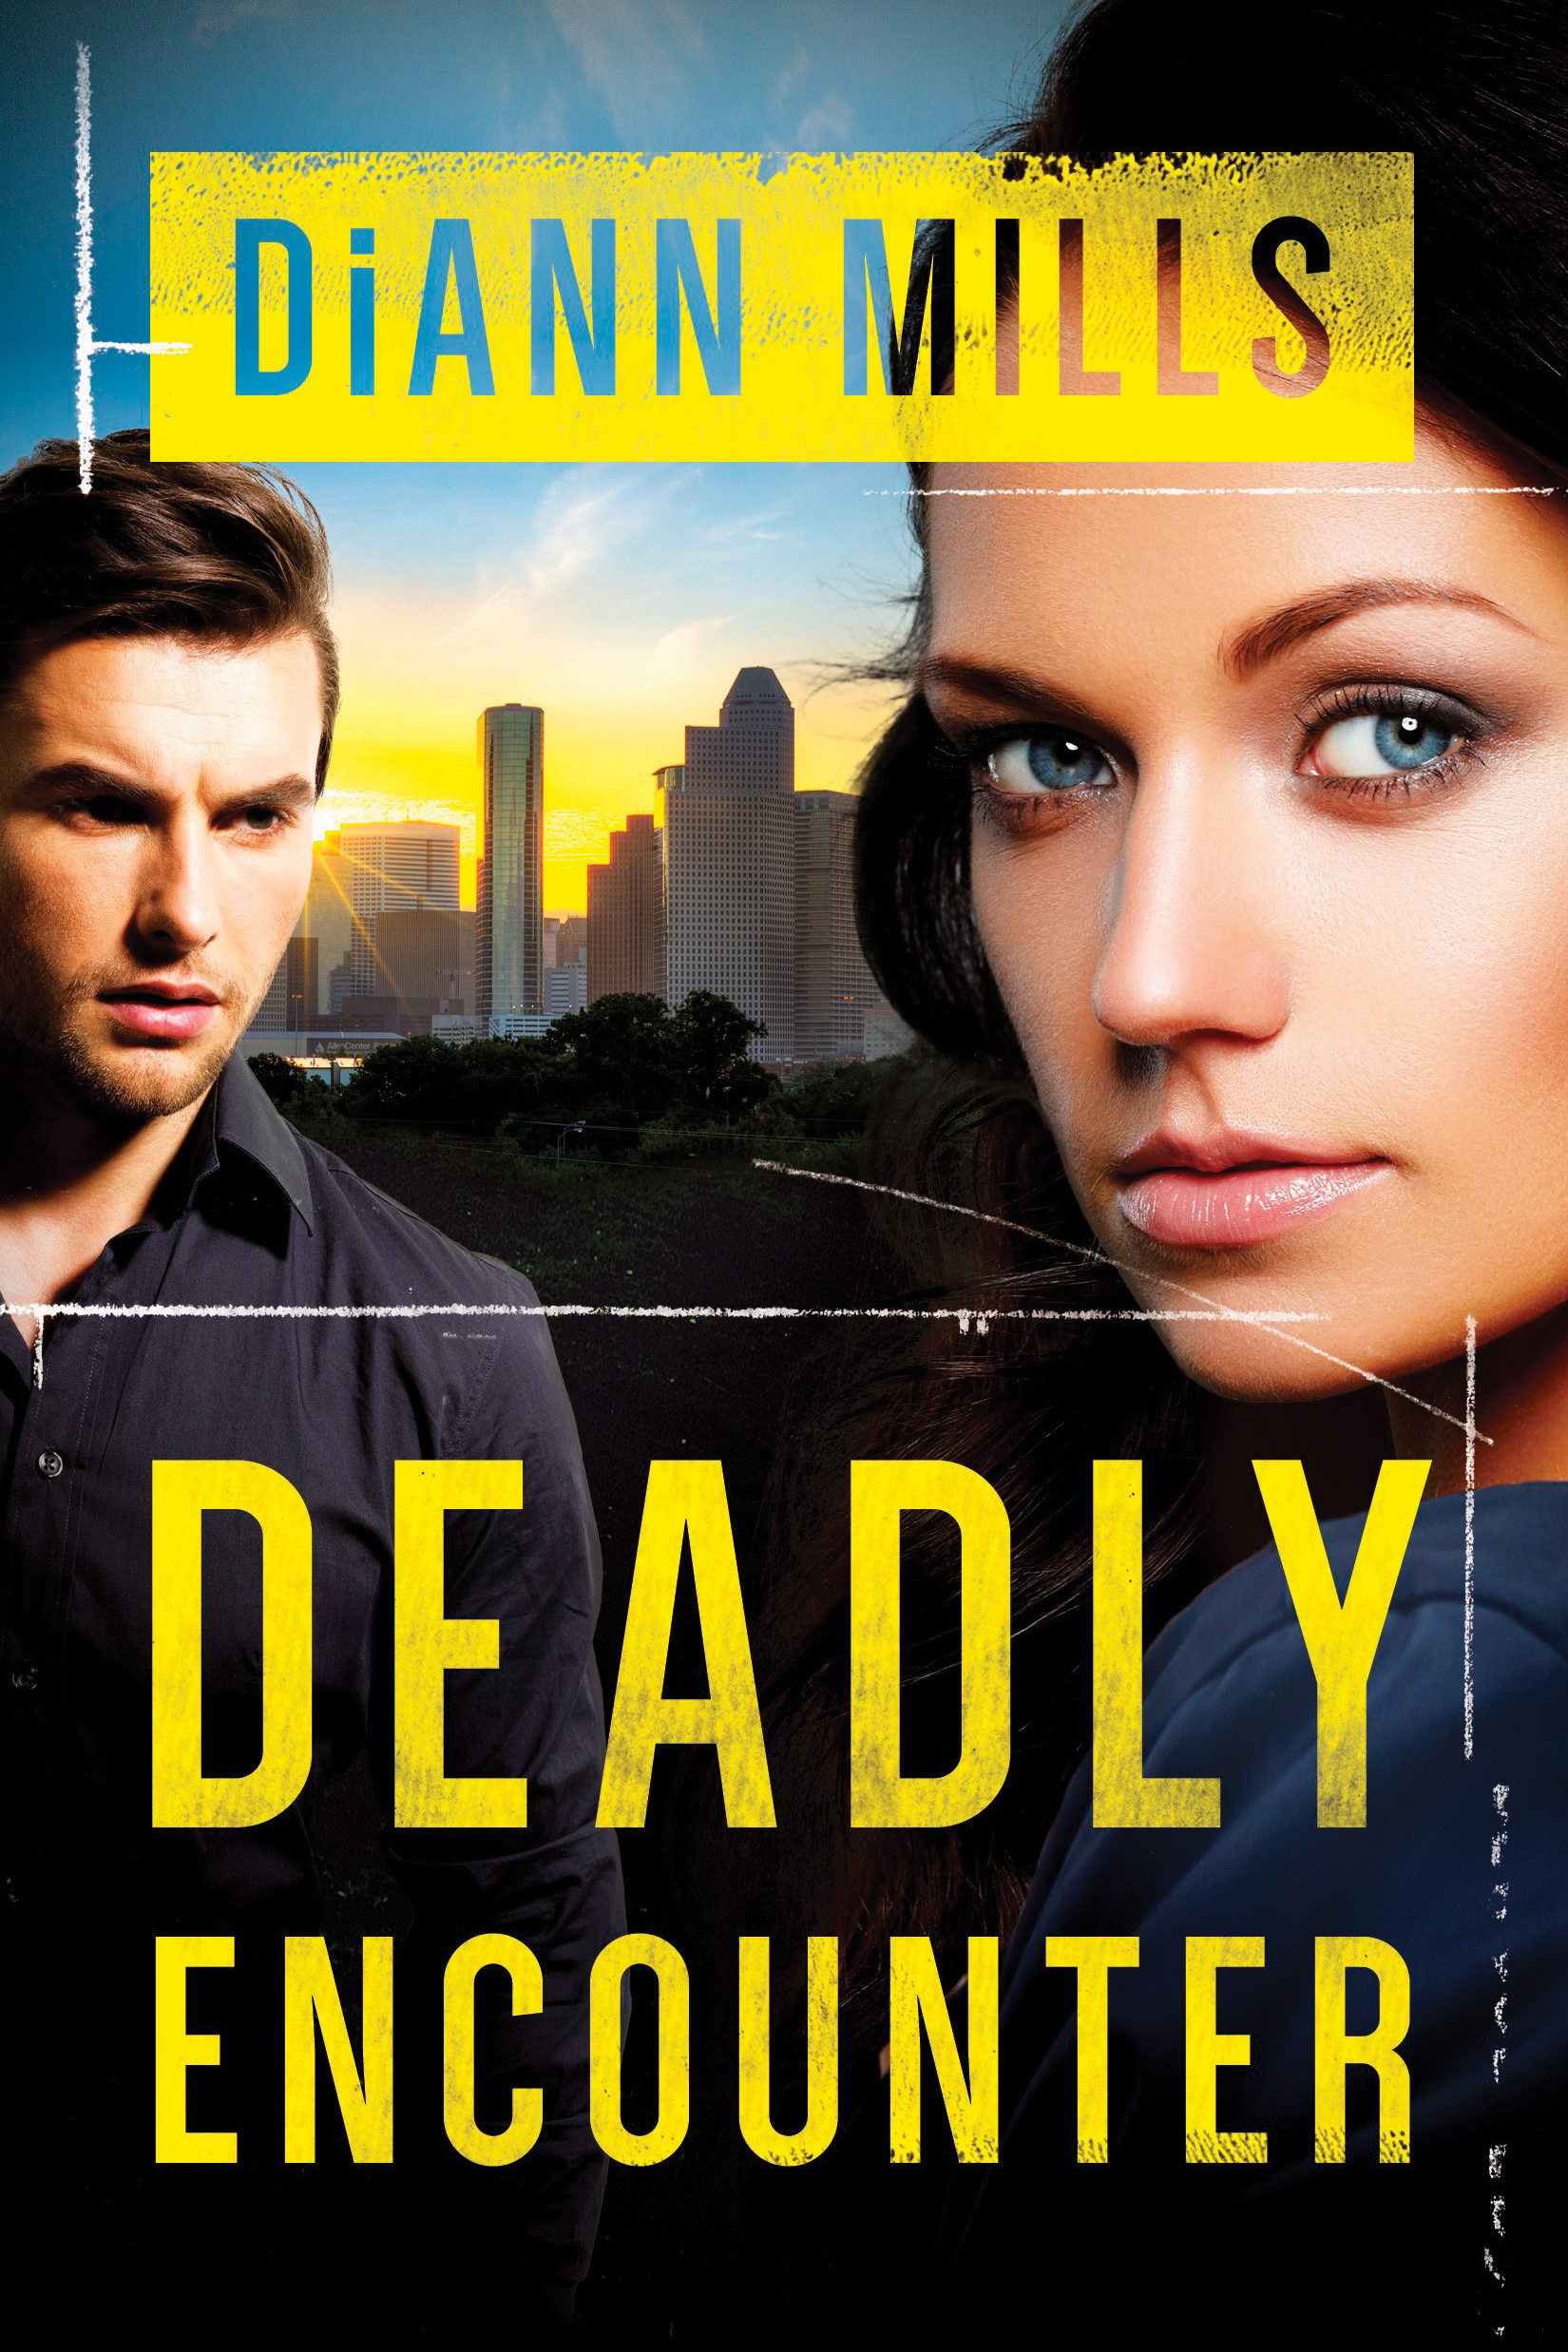 Book review of Deadly Encounter by DiAnn Mills (Tyndale) by papertapepins